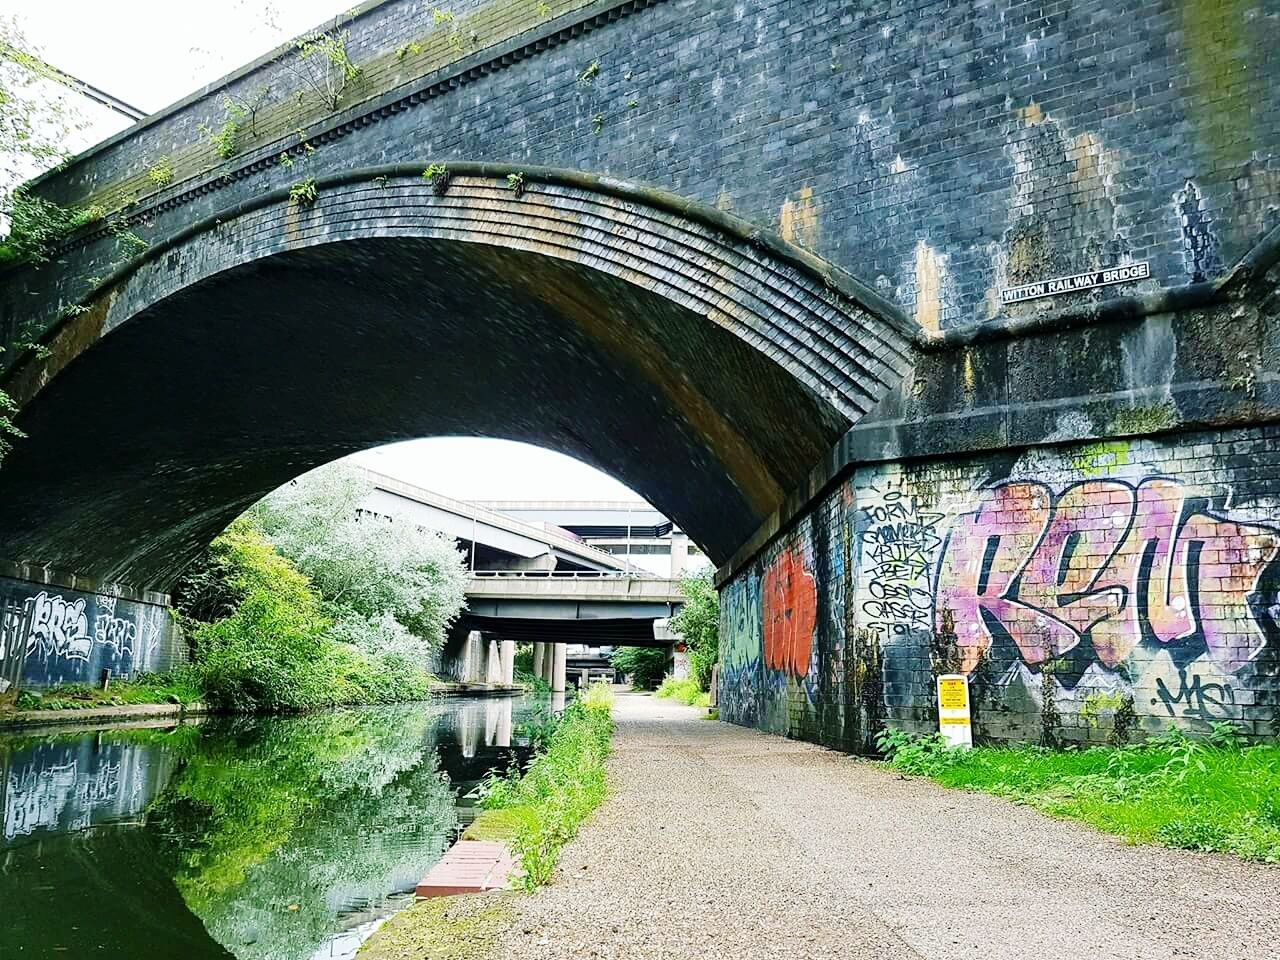 architecture, graffiti, built structure, day, arch, bridge - man made structure, street art, tunnel, outdoors, the way forward, no people, building exterior